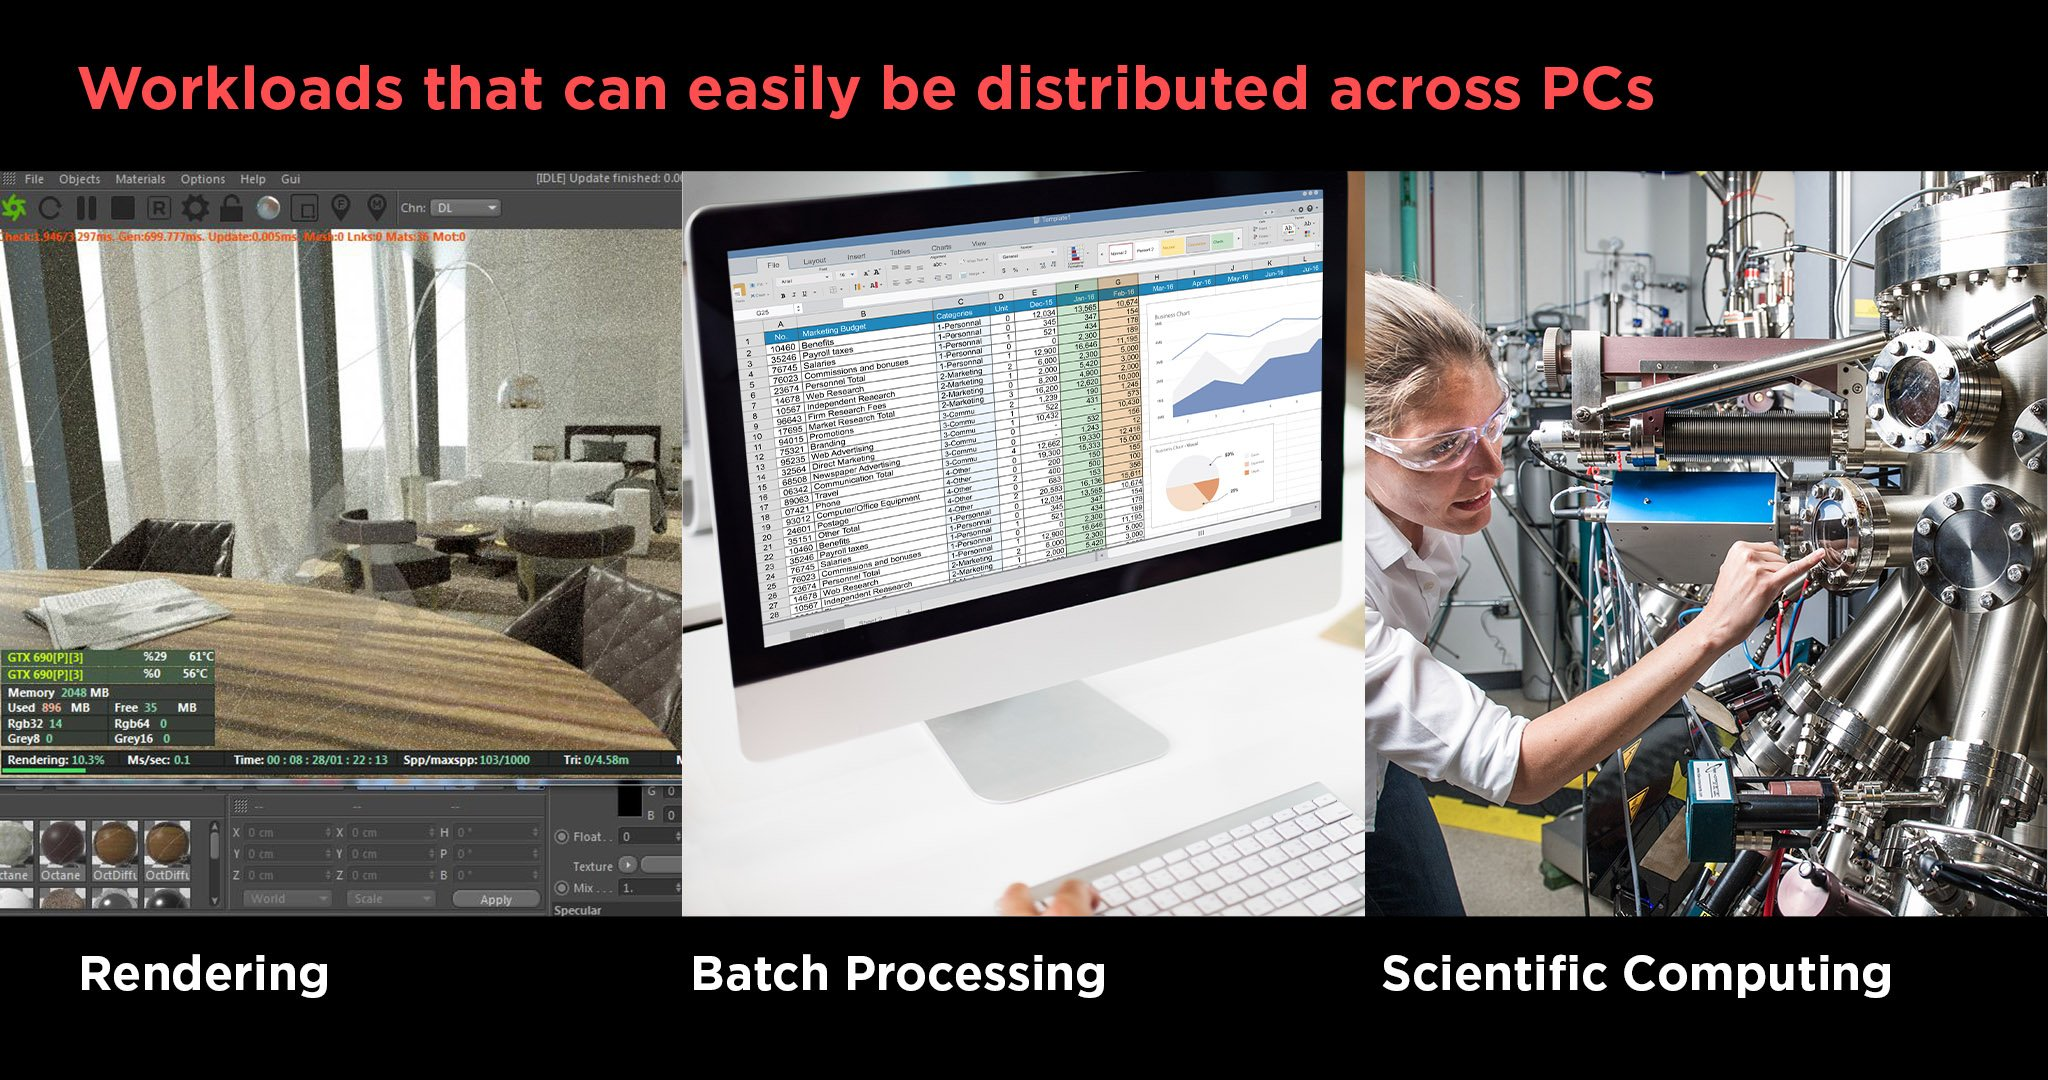 Workloads that can easily be distributed across multiple PCs